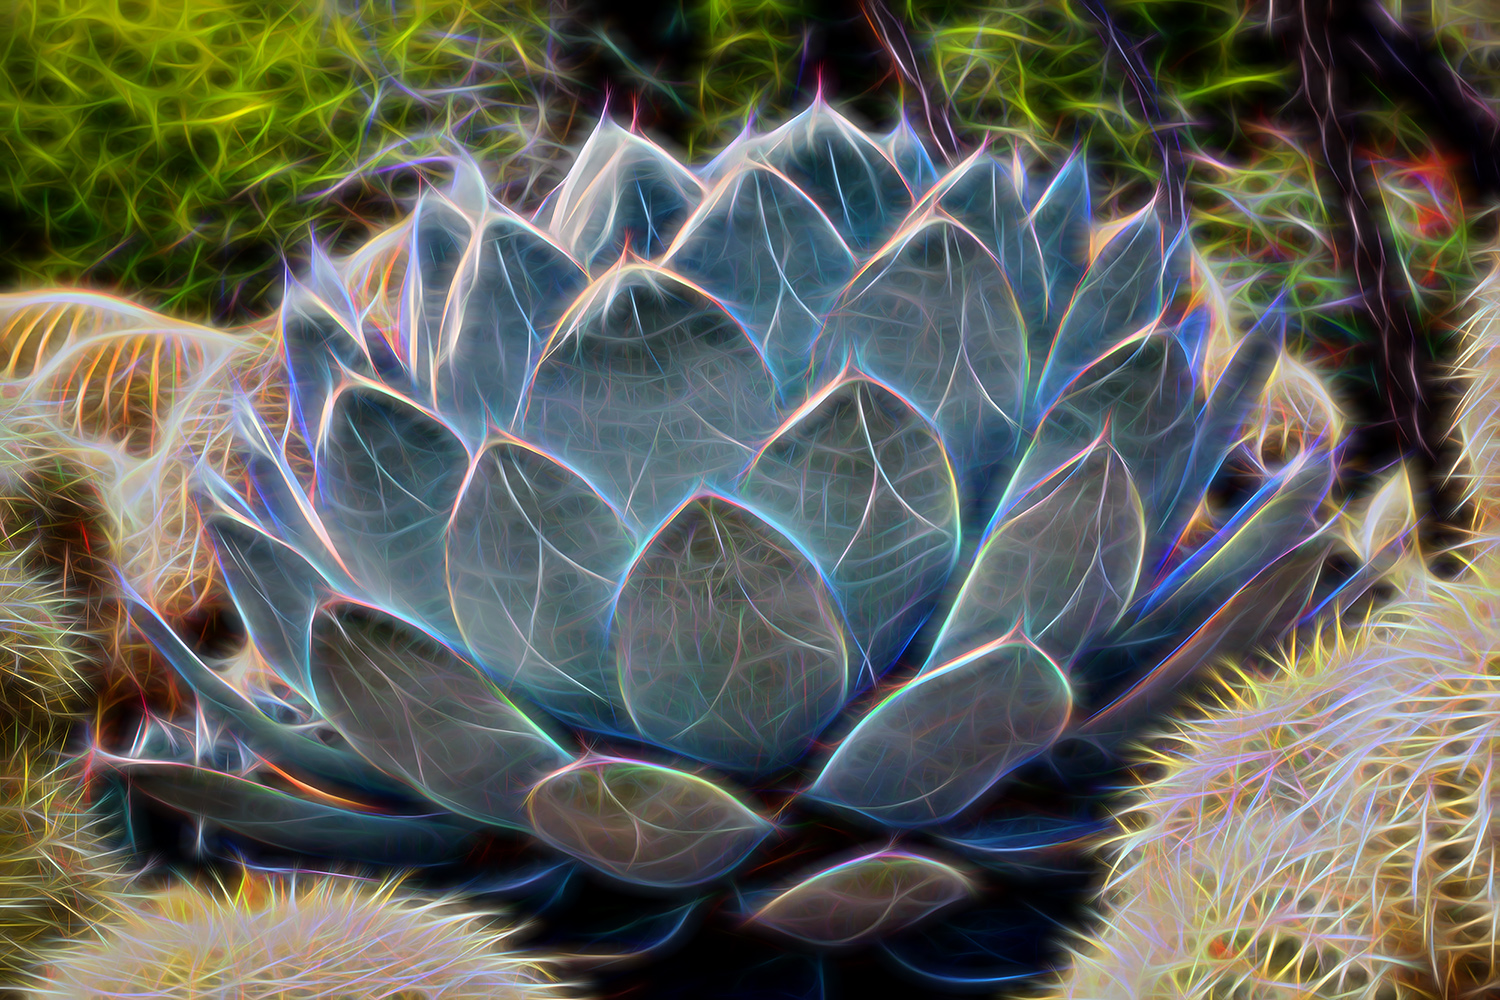 Artichoke Agave Cactus with an artistic glow.